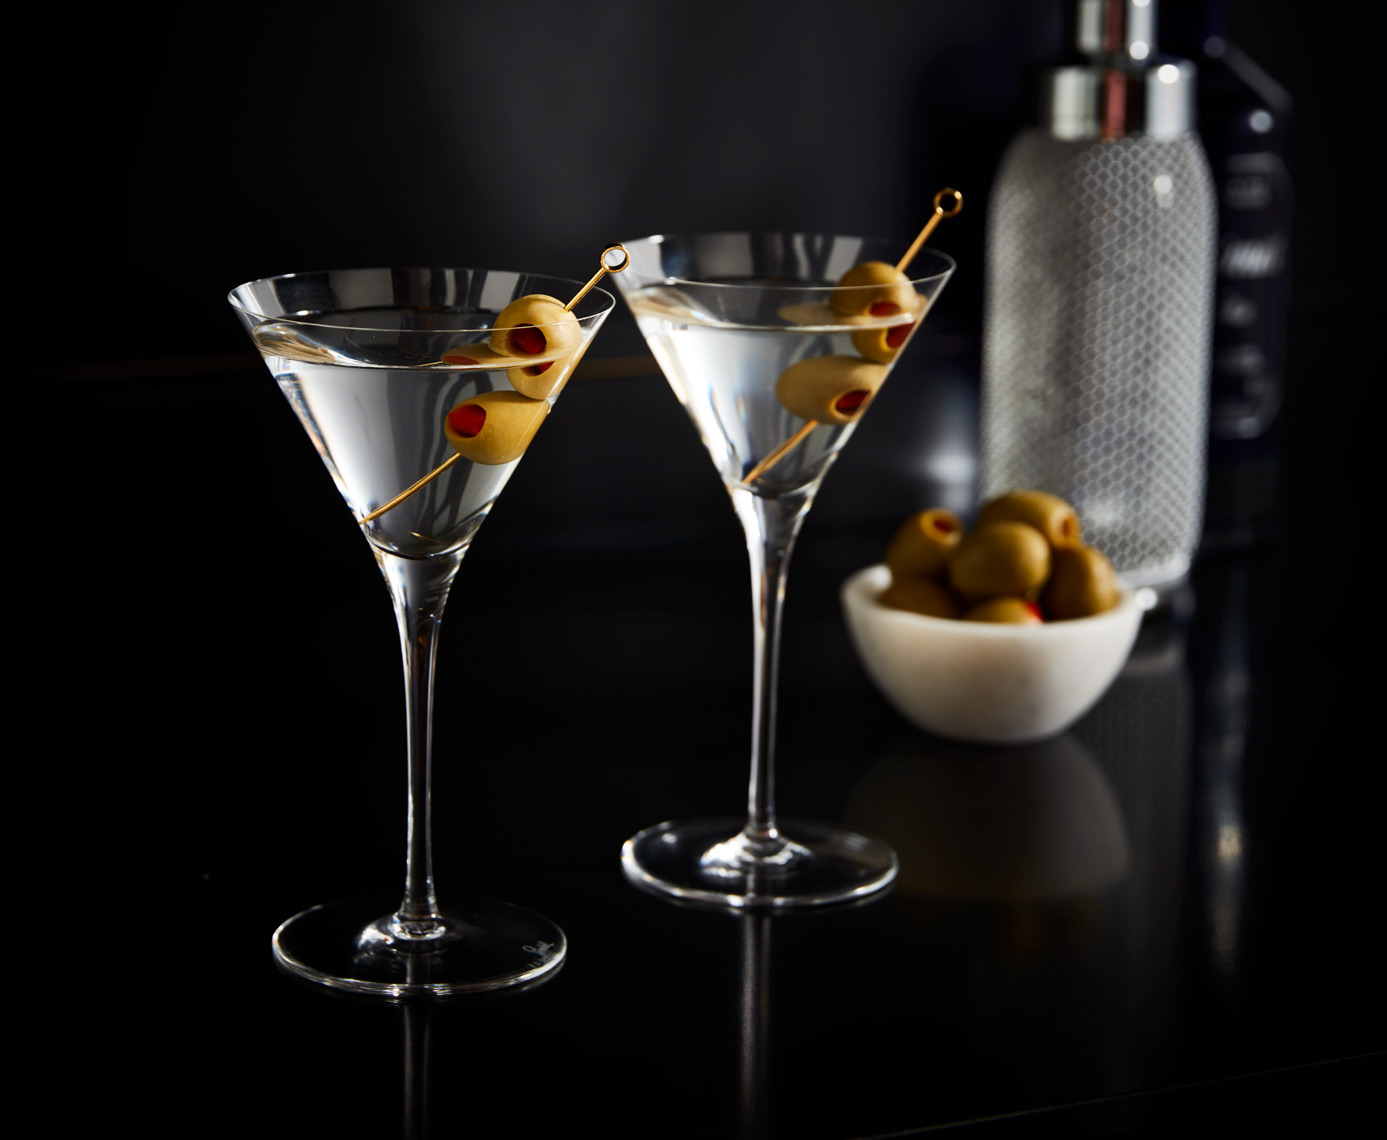 2 martini glasses with olives